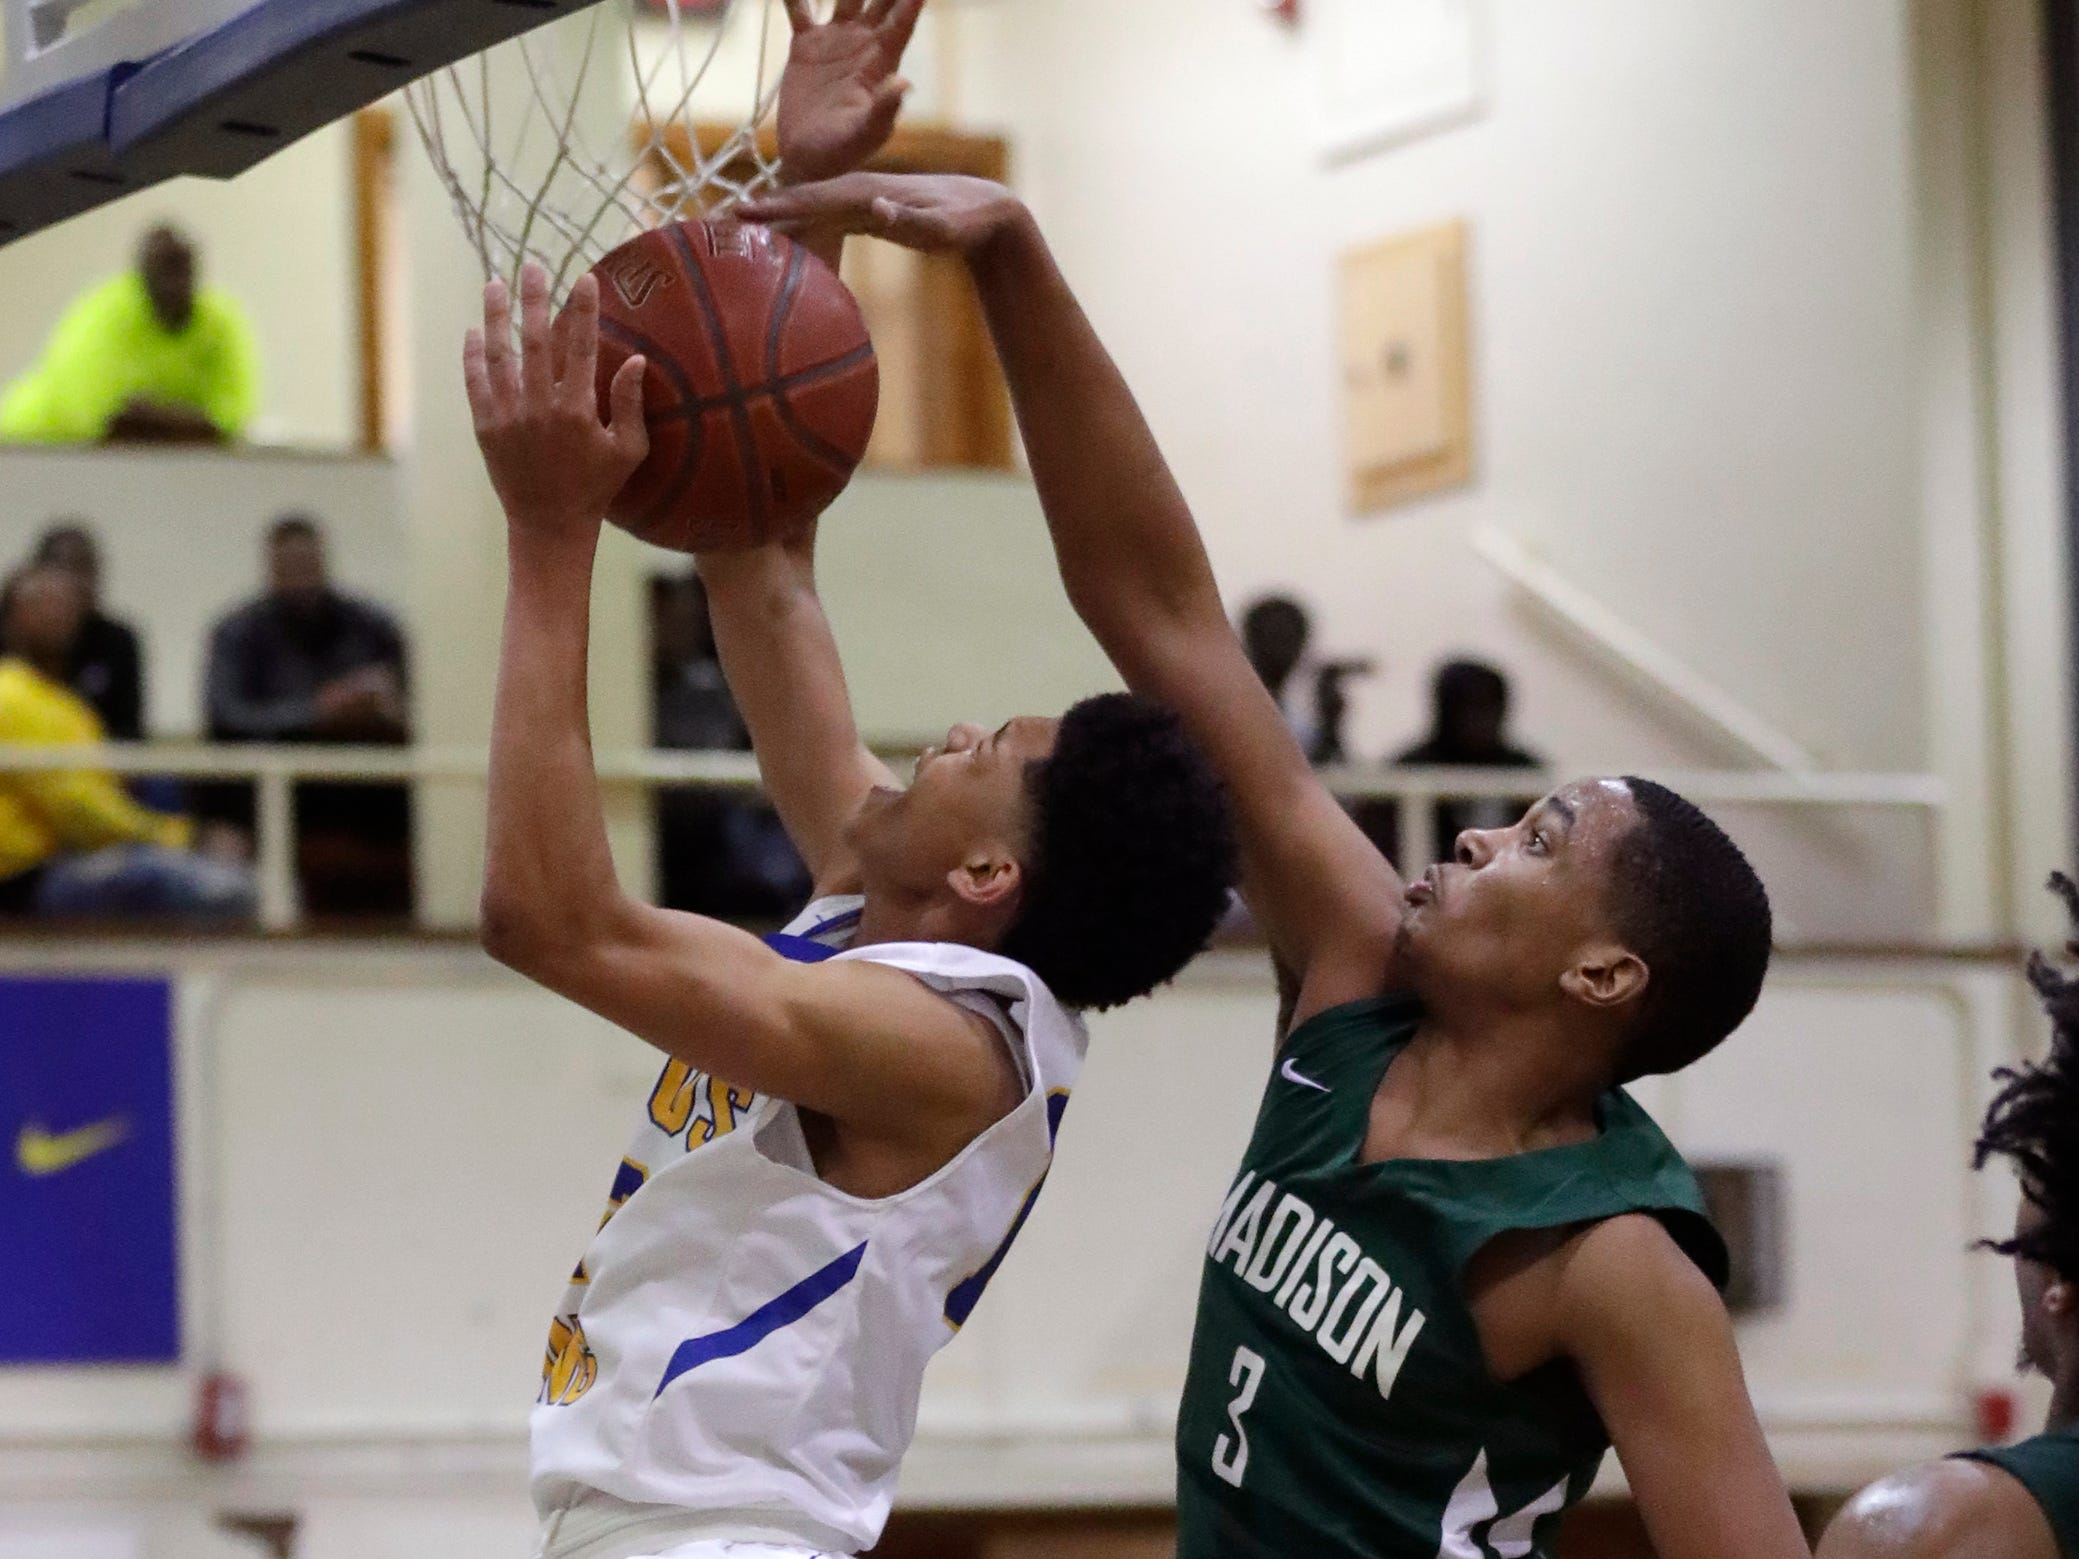 Milwaukee Madison's Davin Johnson blocks the shot of Milwaukee King's  Quinton Murrell on Wednesday, Jan. 9, during a key City Conference game at Rufus King High School.